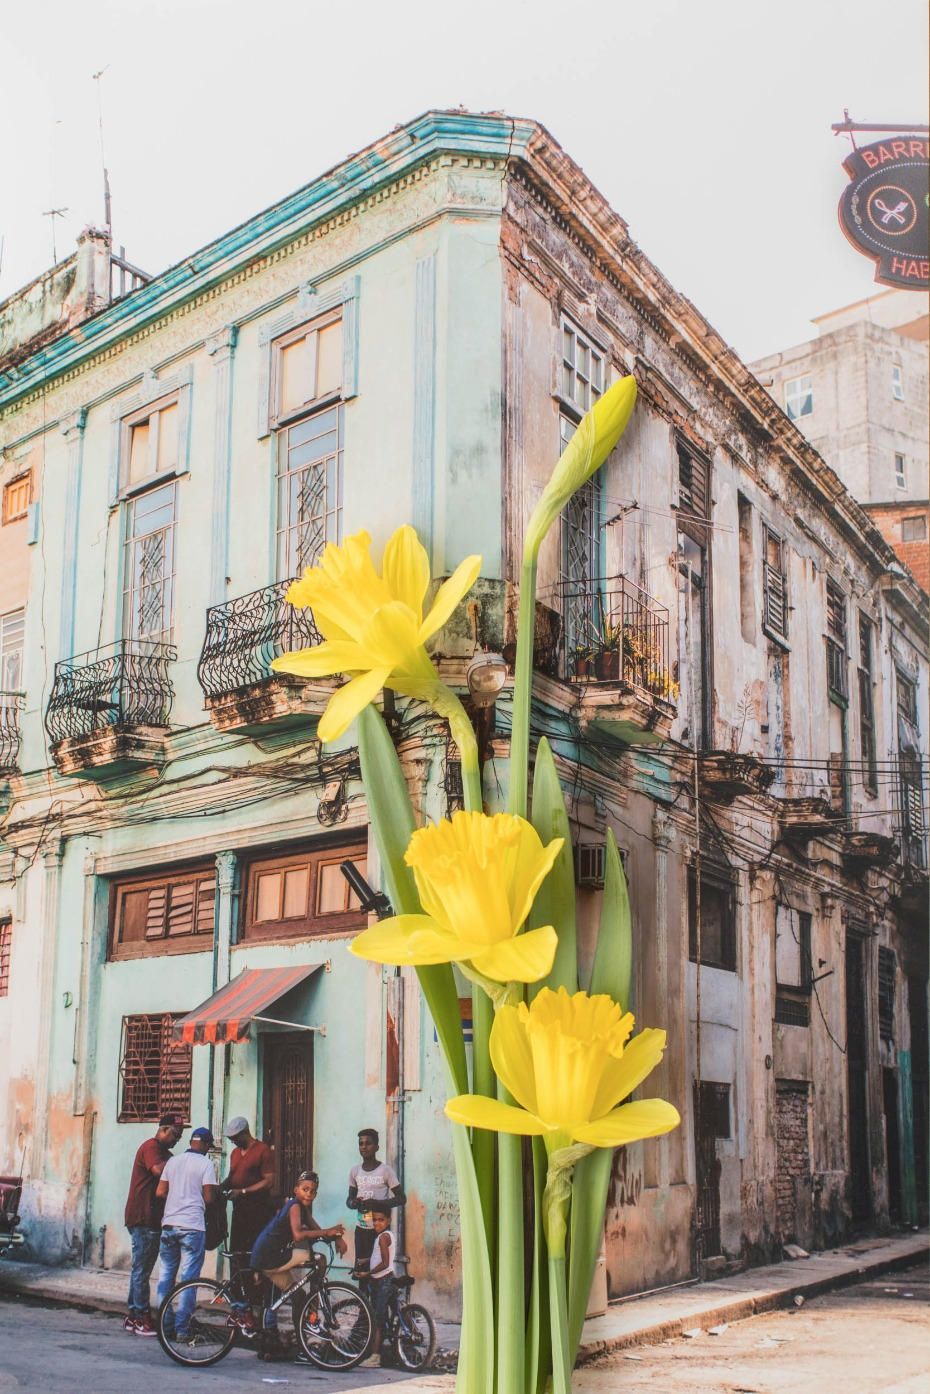 The beauty of Old Havana with fresh blooms